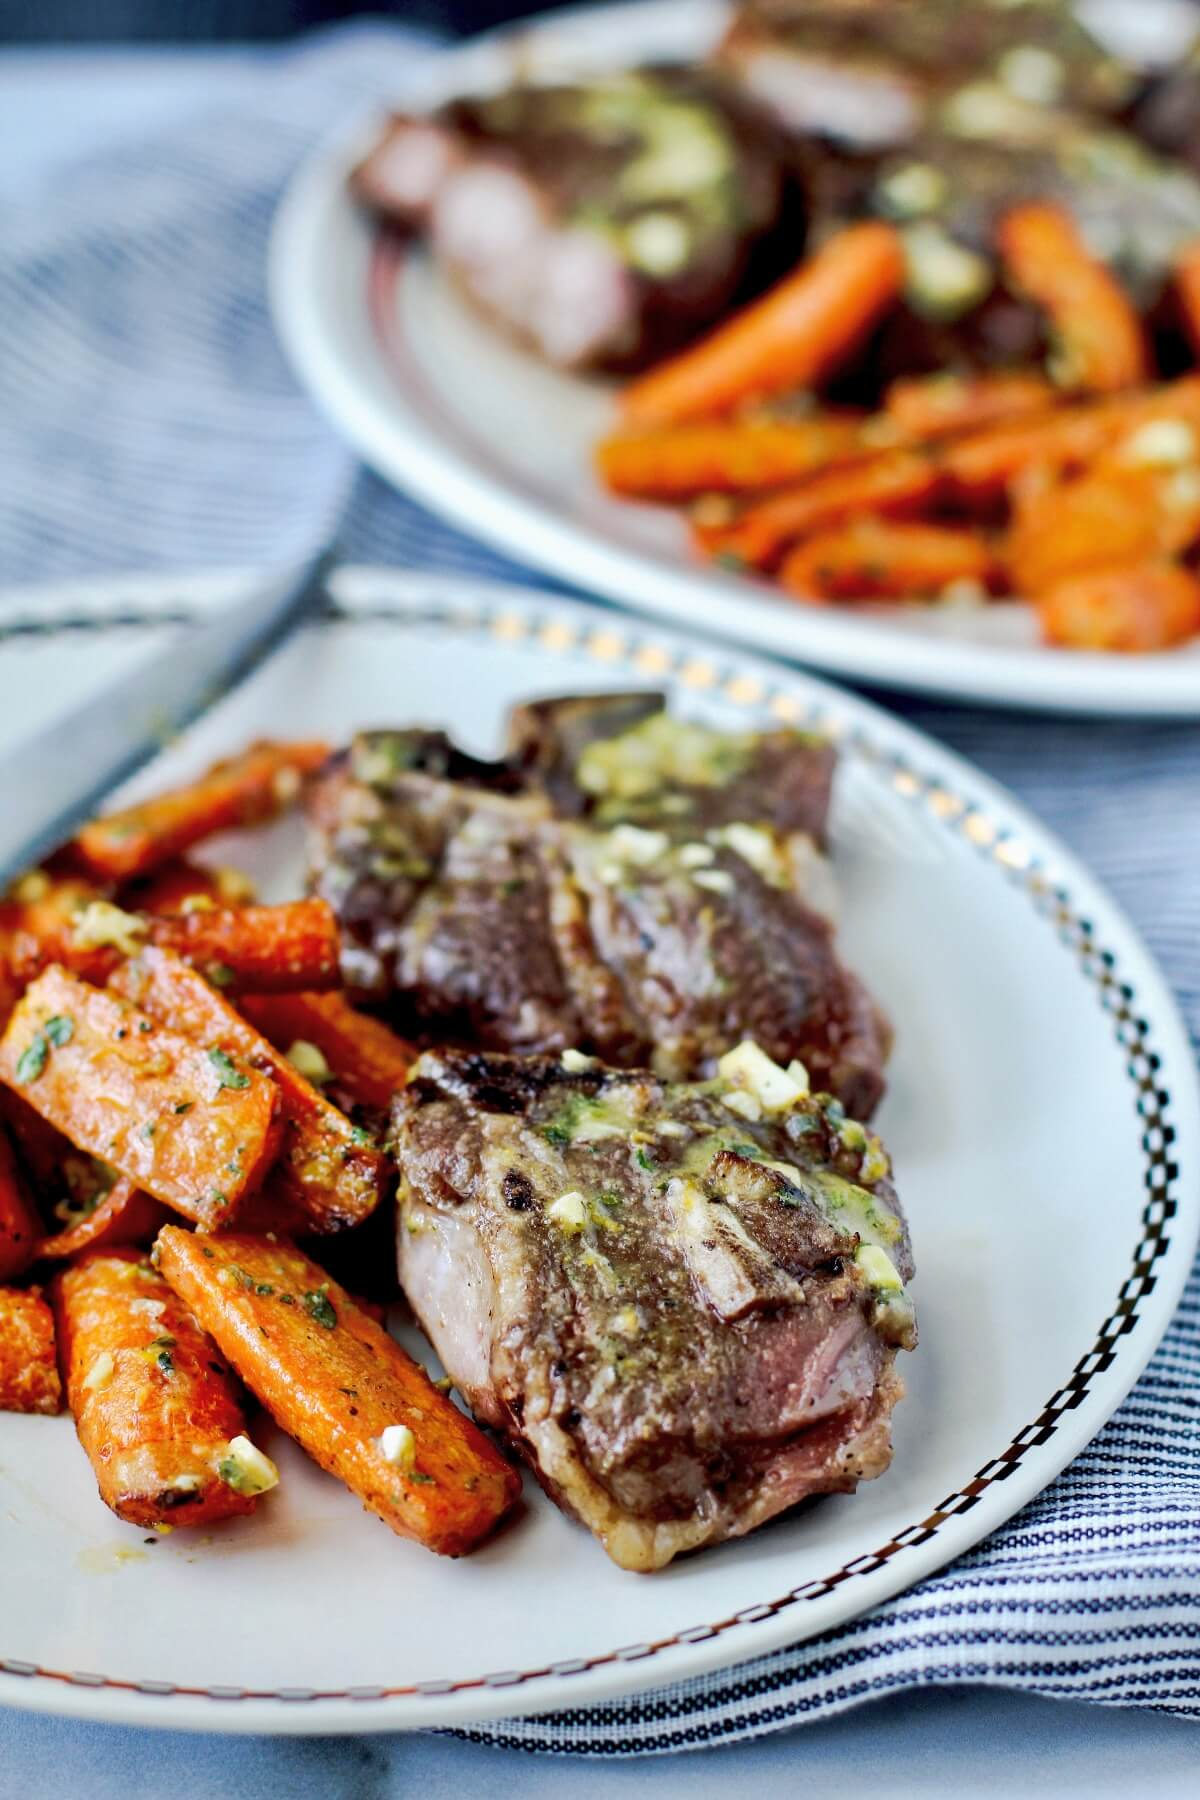 Air fryer lamb chop meal with carrots